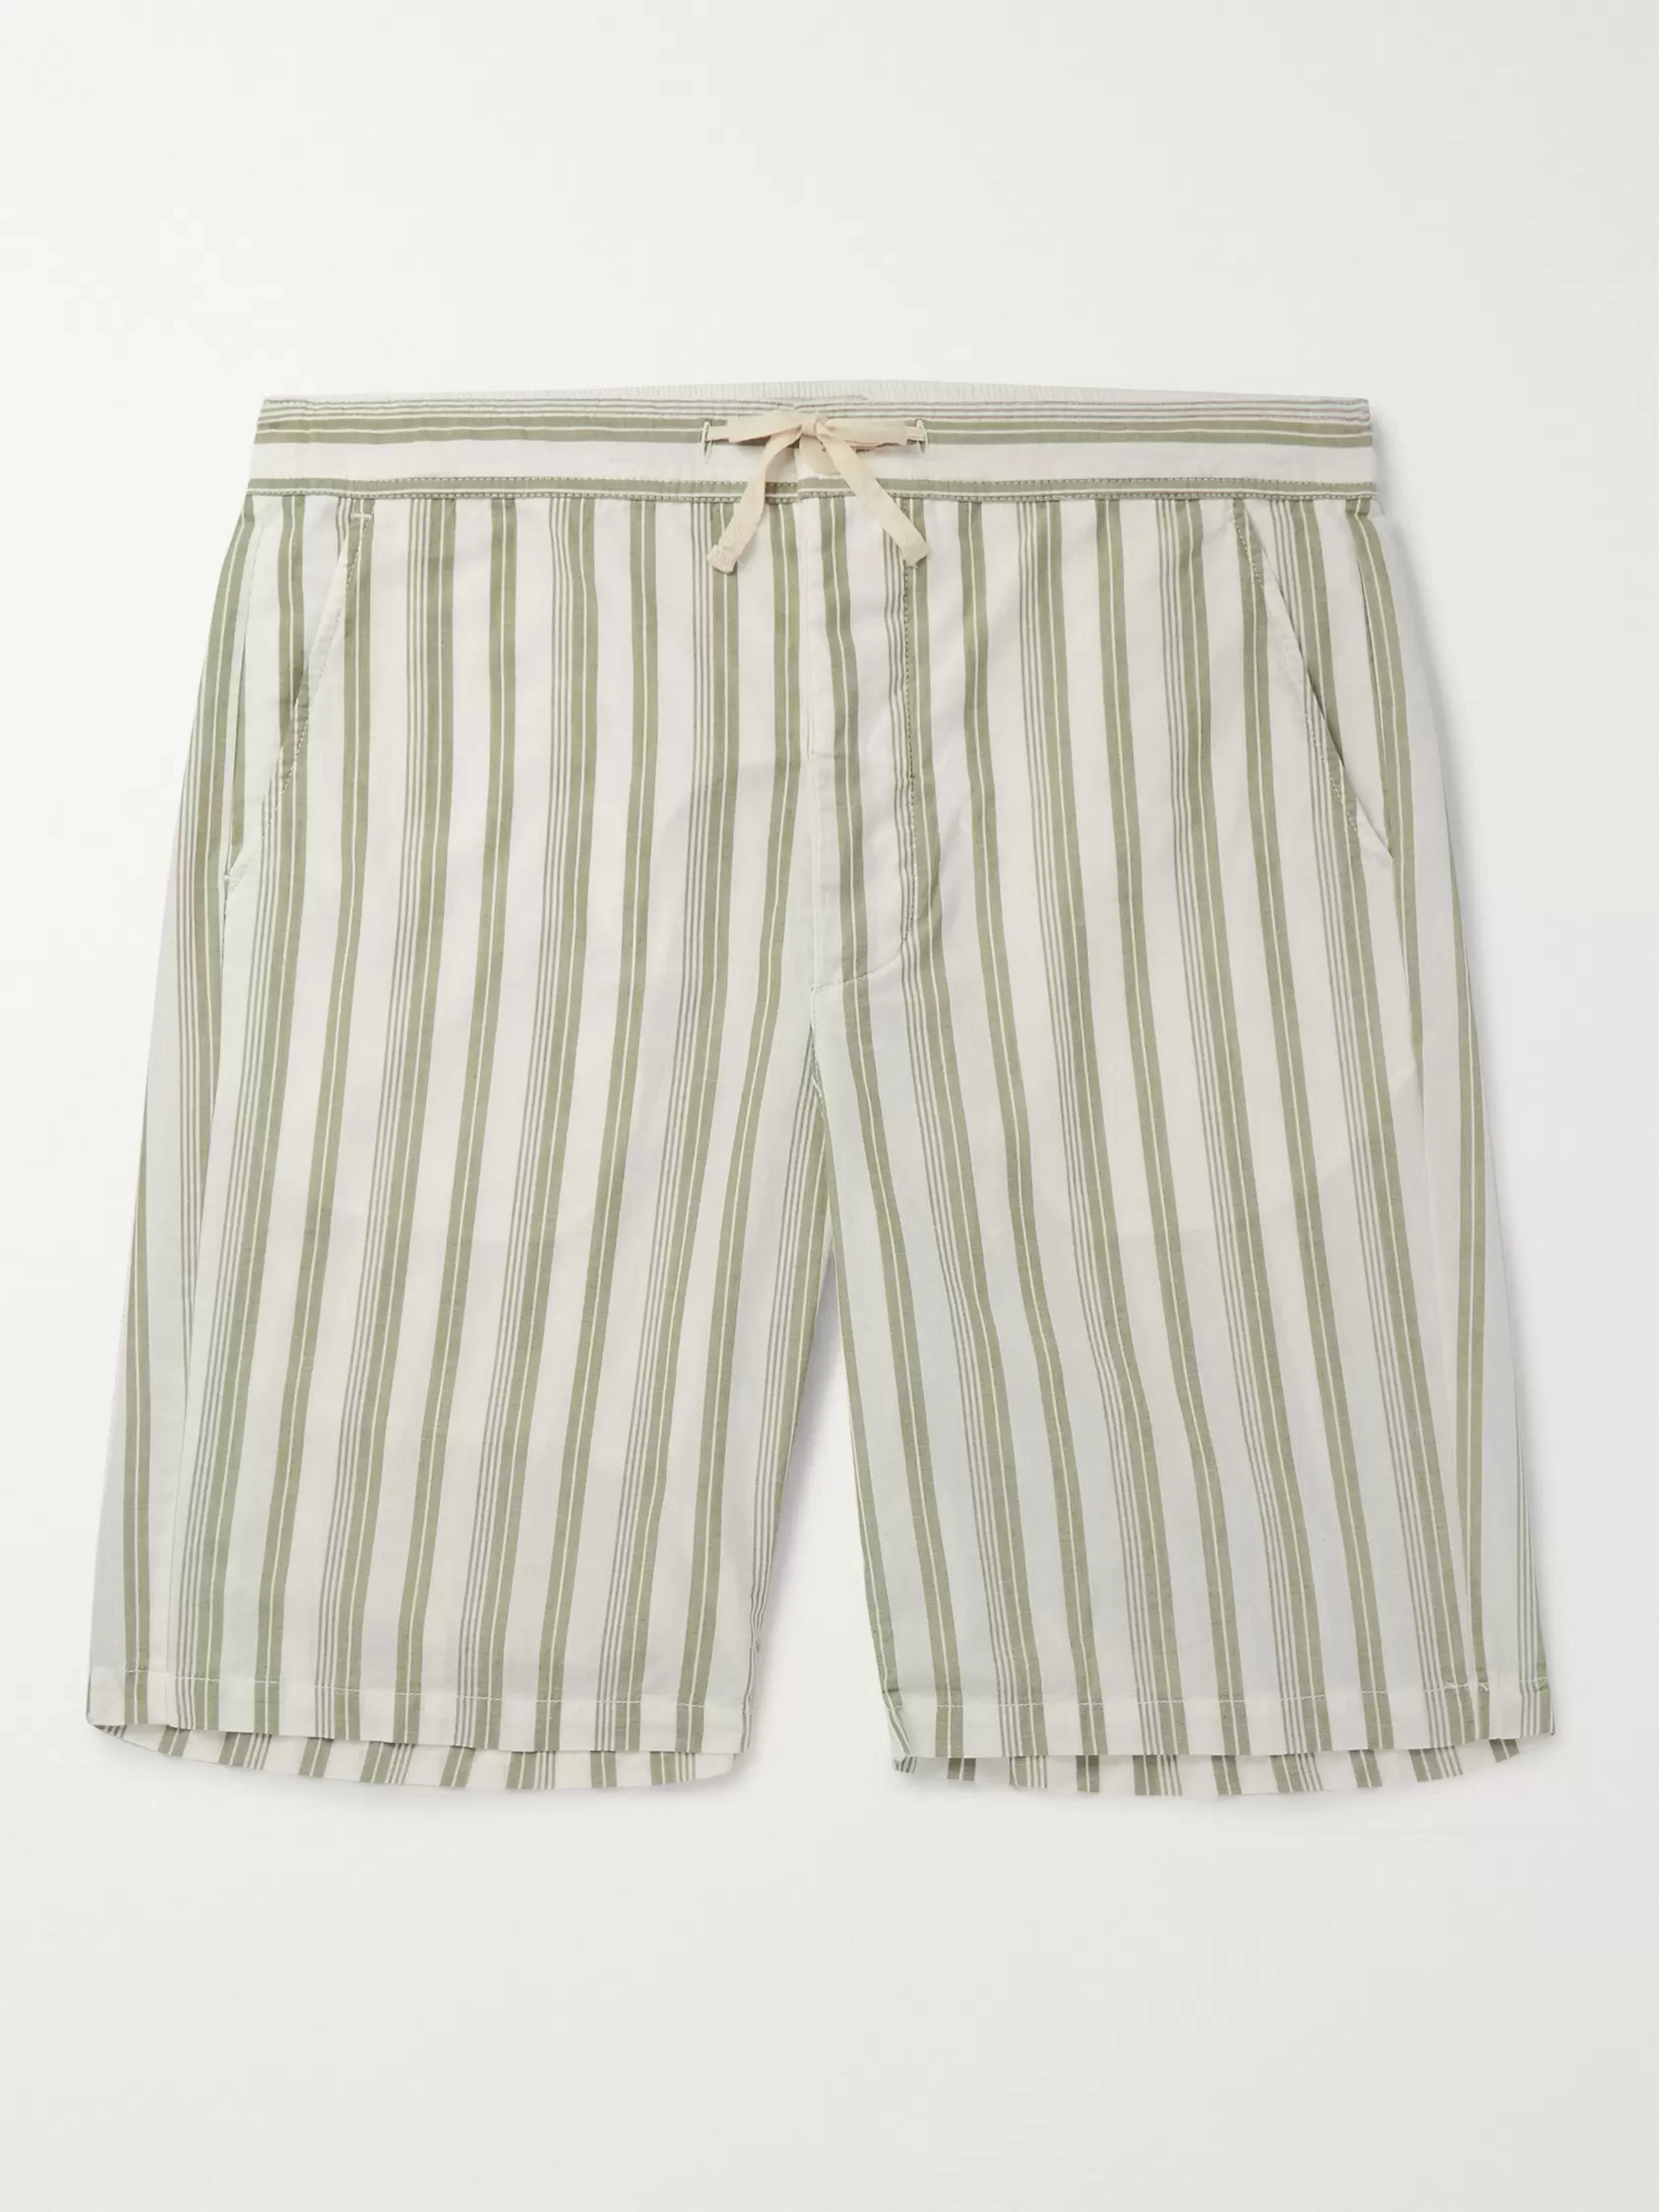 Oliver Spencer Loungewear Striped Organic Cotton Drawstring Pyjama Shorts